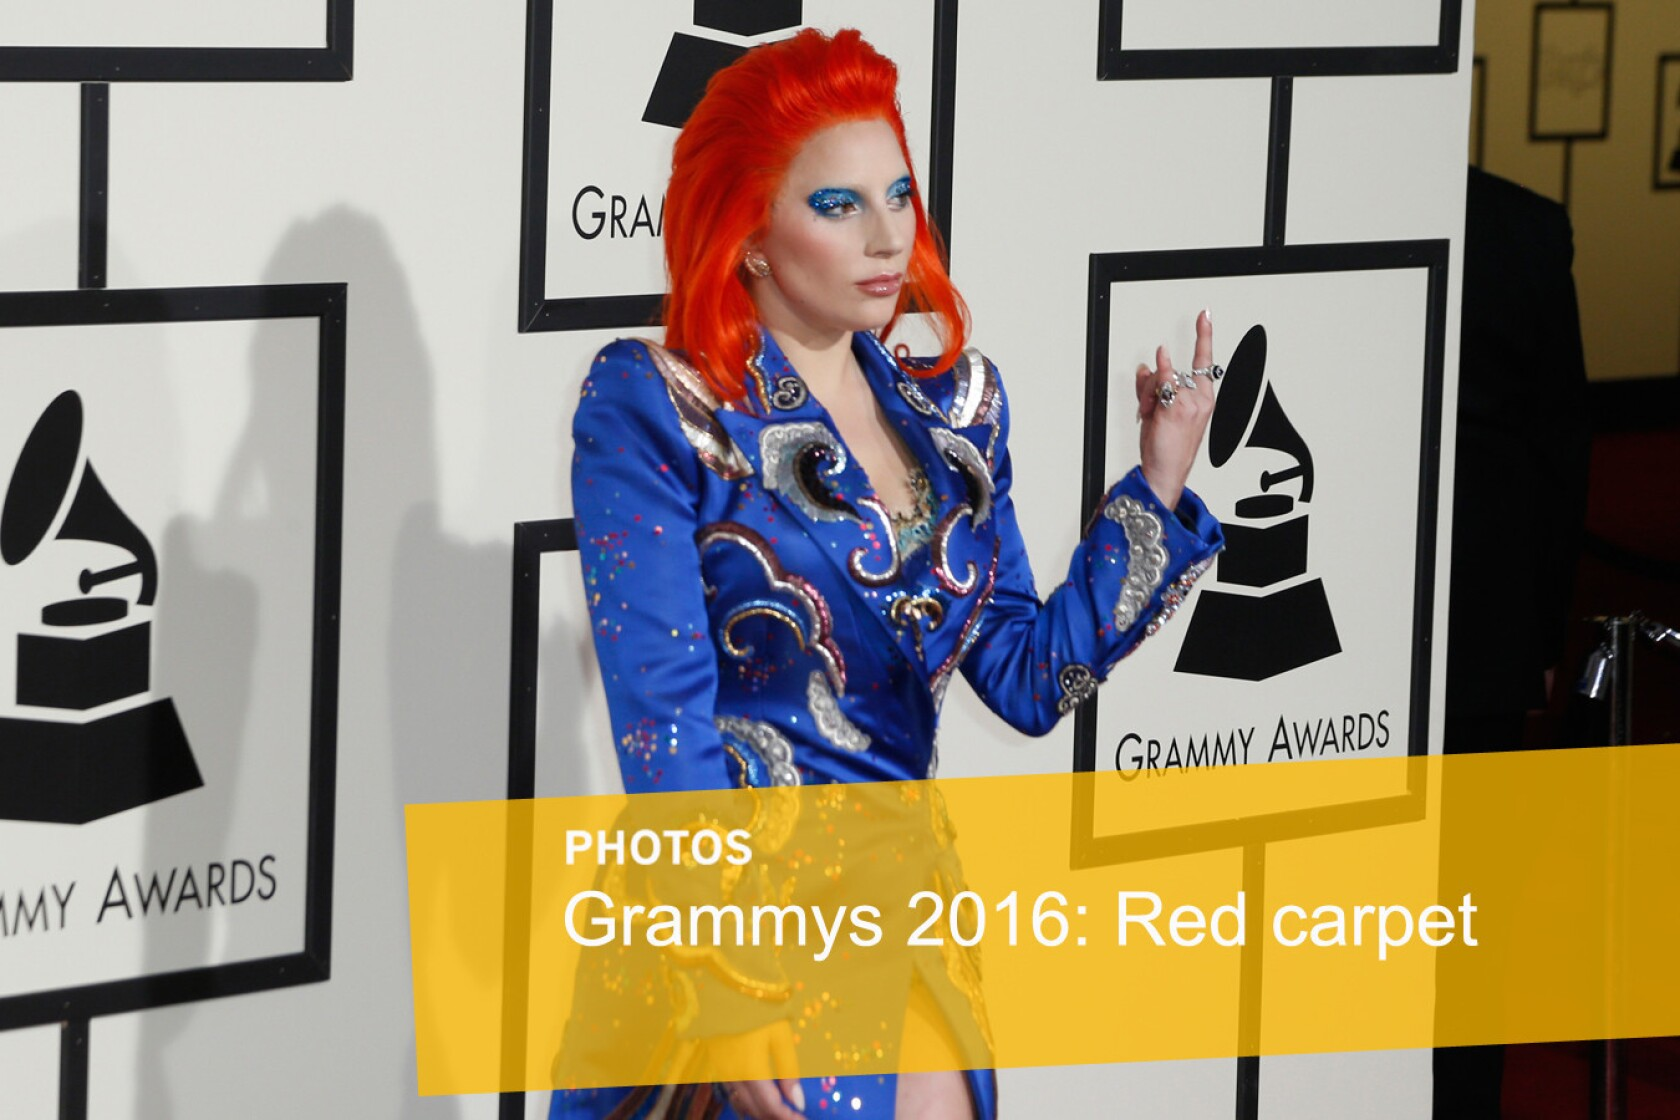 2016 Grammy Awards: Complete list of winners and nominees - Los